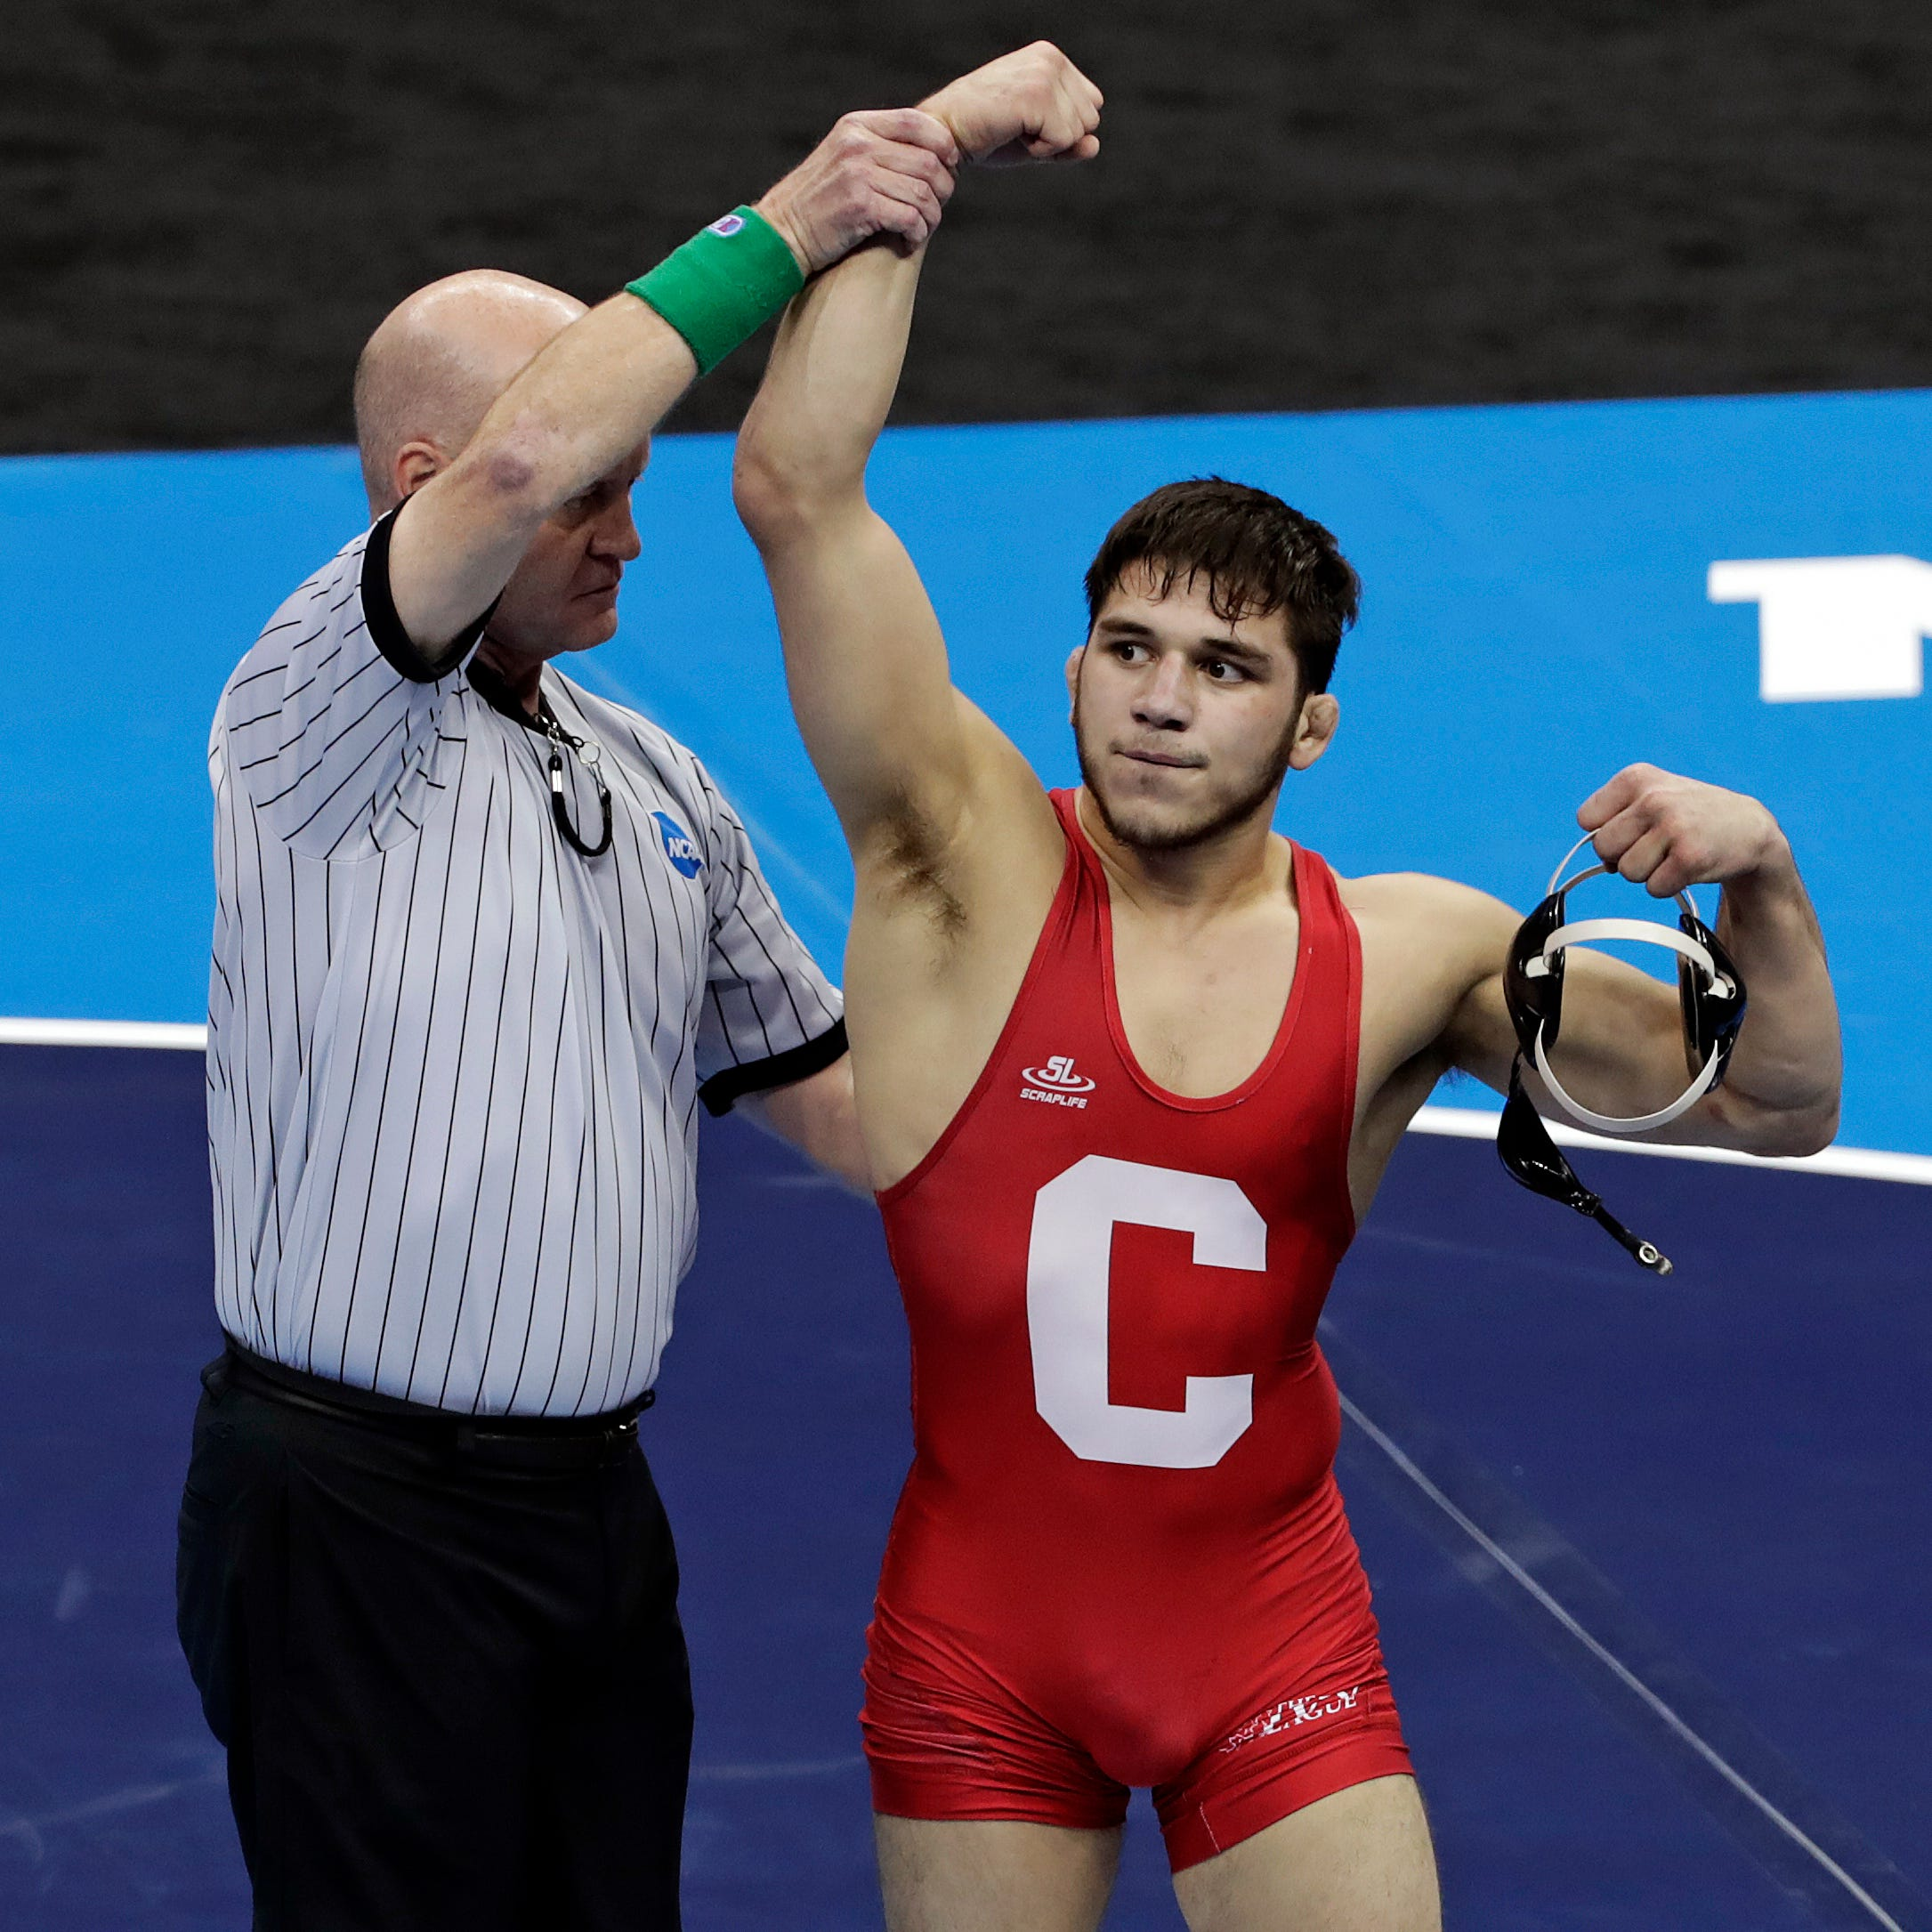 'The baddest dude in the world': Yianni Diakomihalis wins 2nd straight NCAA wrestling title